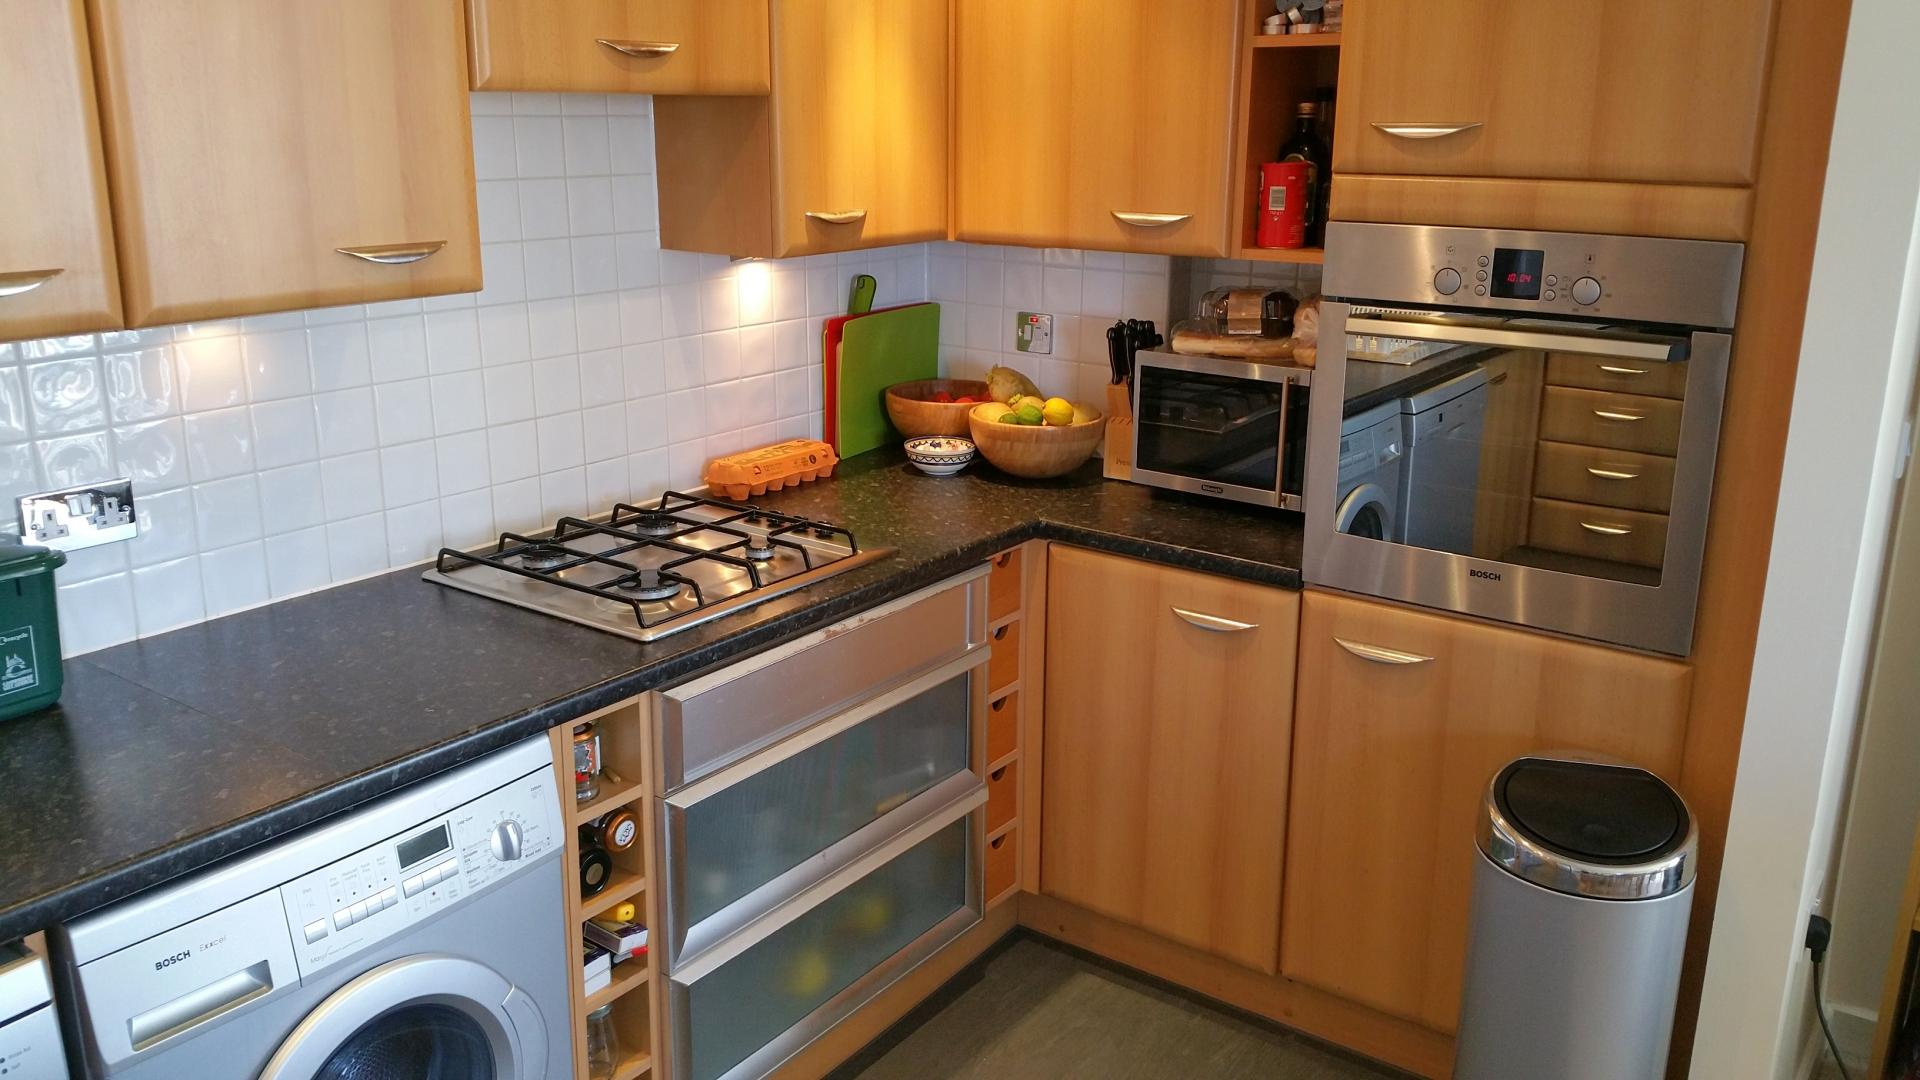 Full kitchen at Central Station Apartment, Mill Road, Cambridge - Citybase Apartments